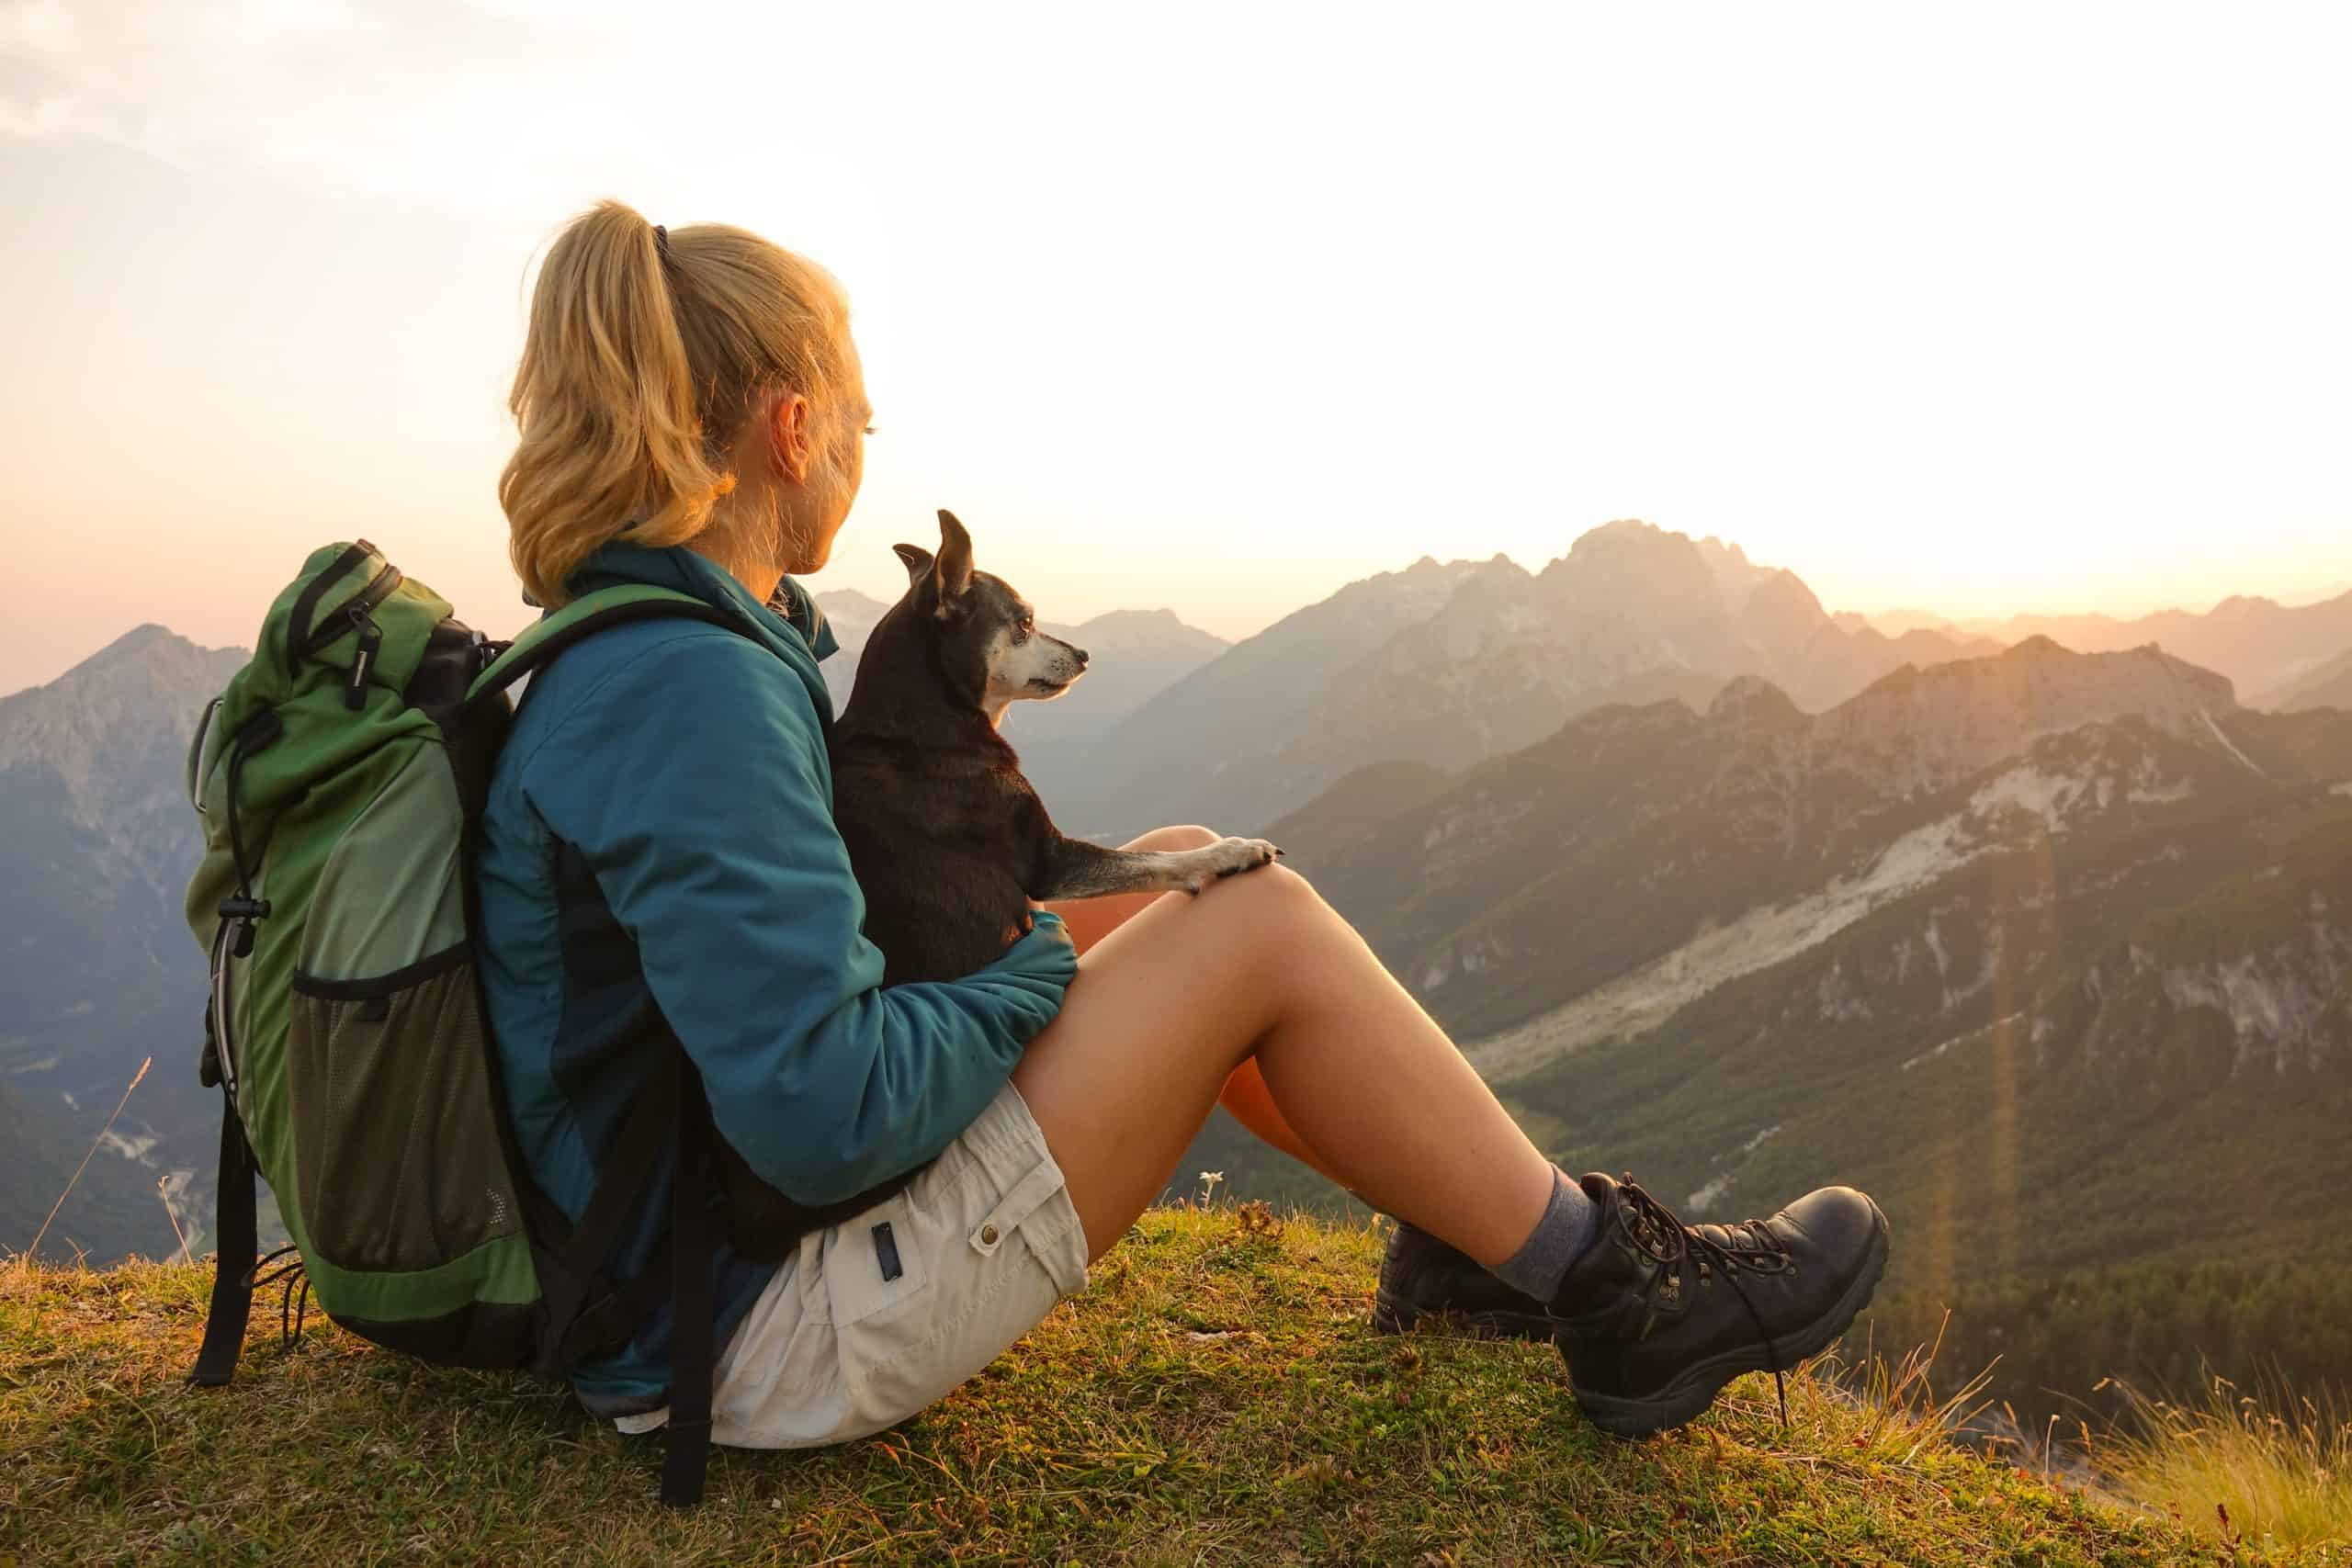 Woman on trekking adventure holds her small dog on her lap during a break. Trekking with dogs involves bringing their food and water, but how much? Walking for hours makes it necessary to increase the usual amount of water and food.